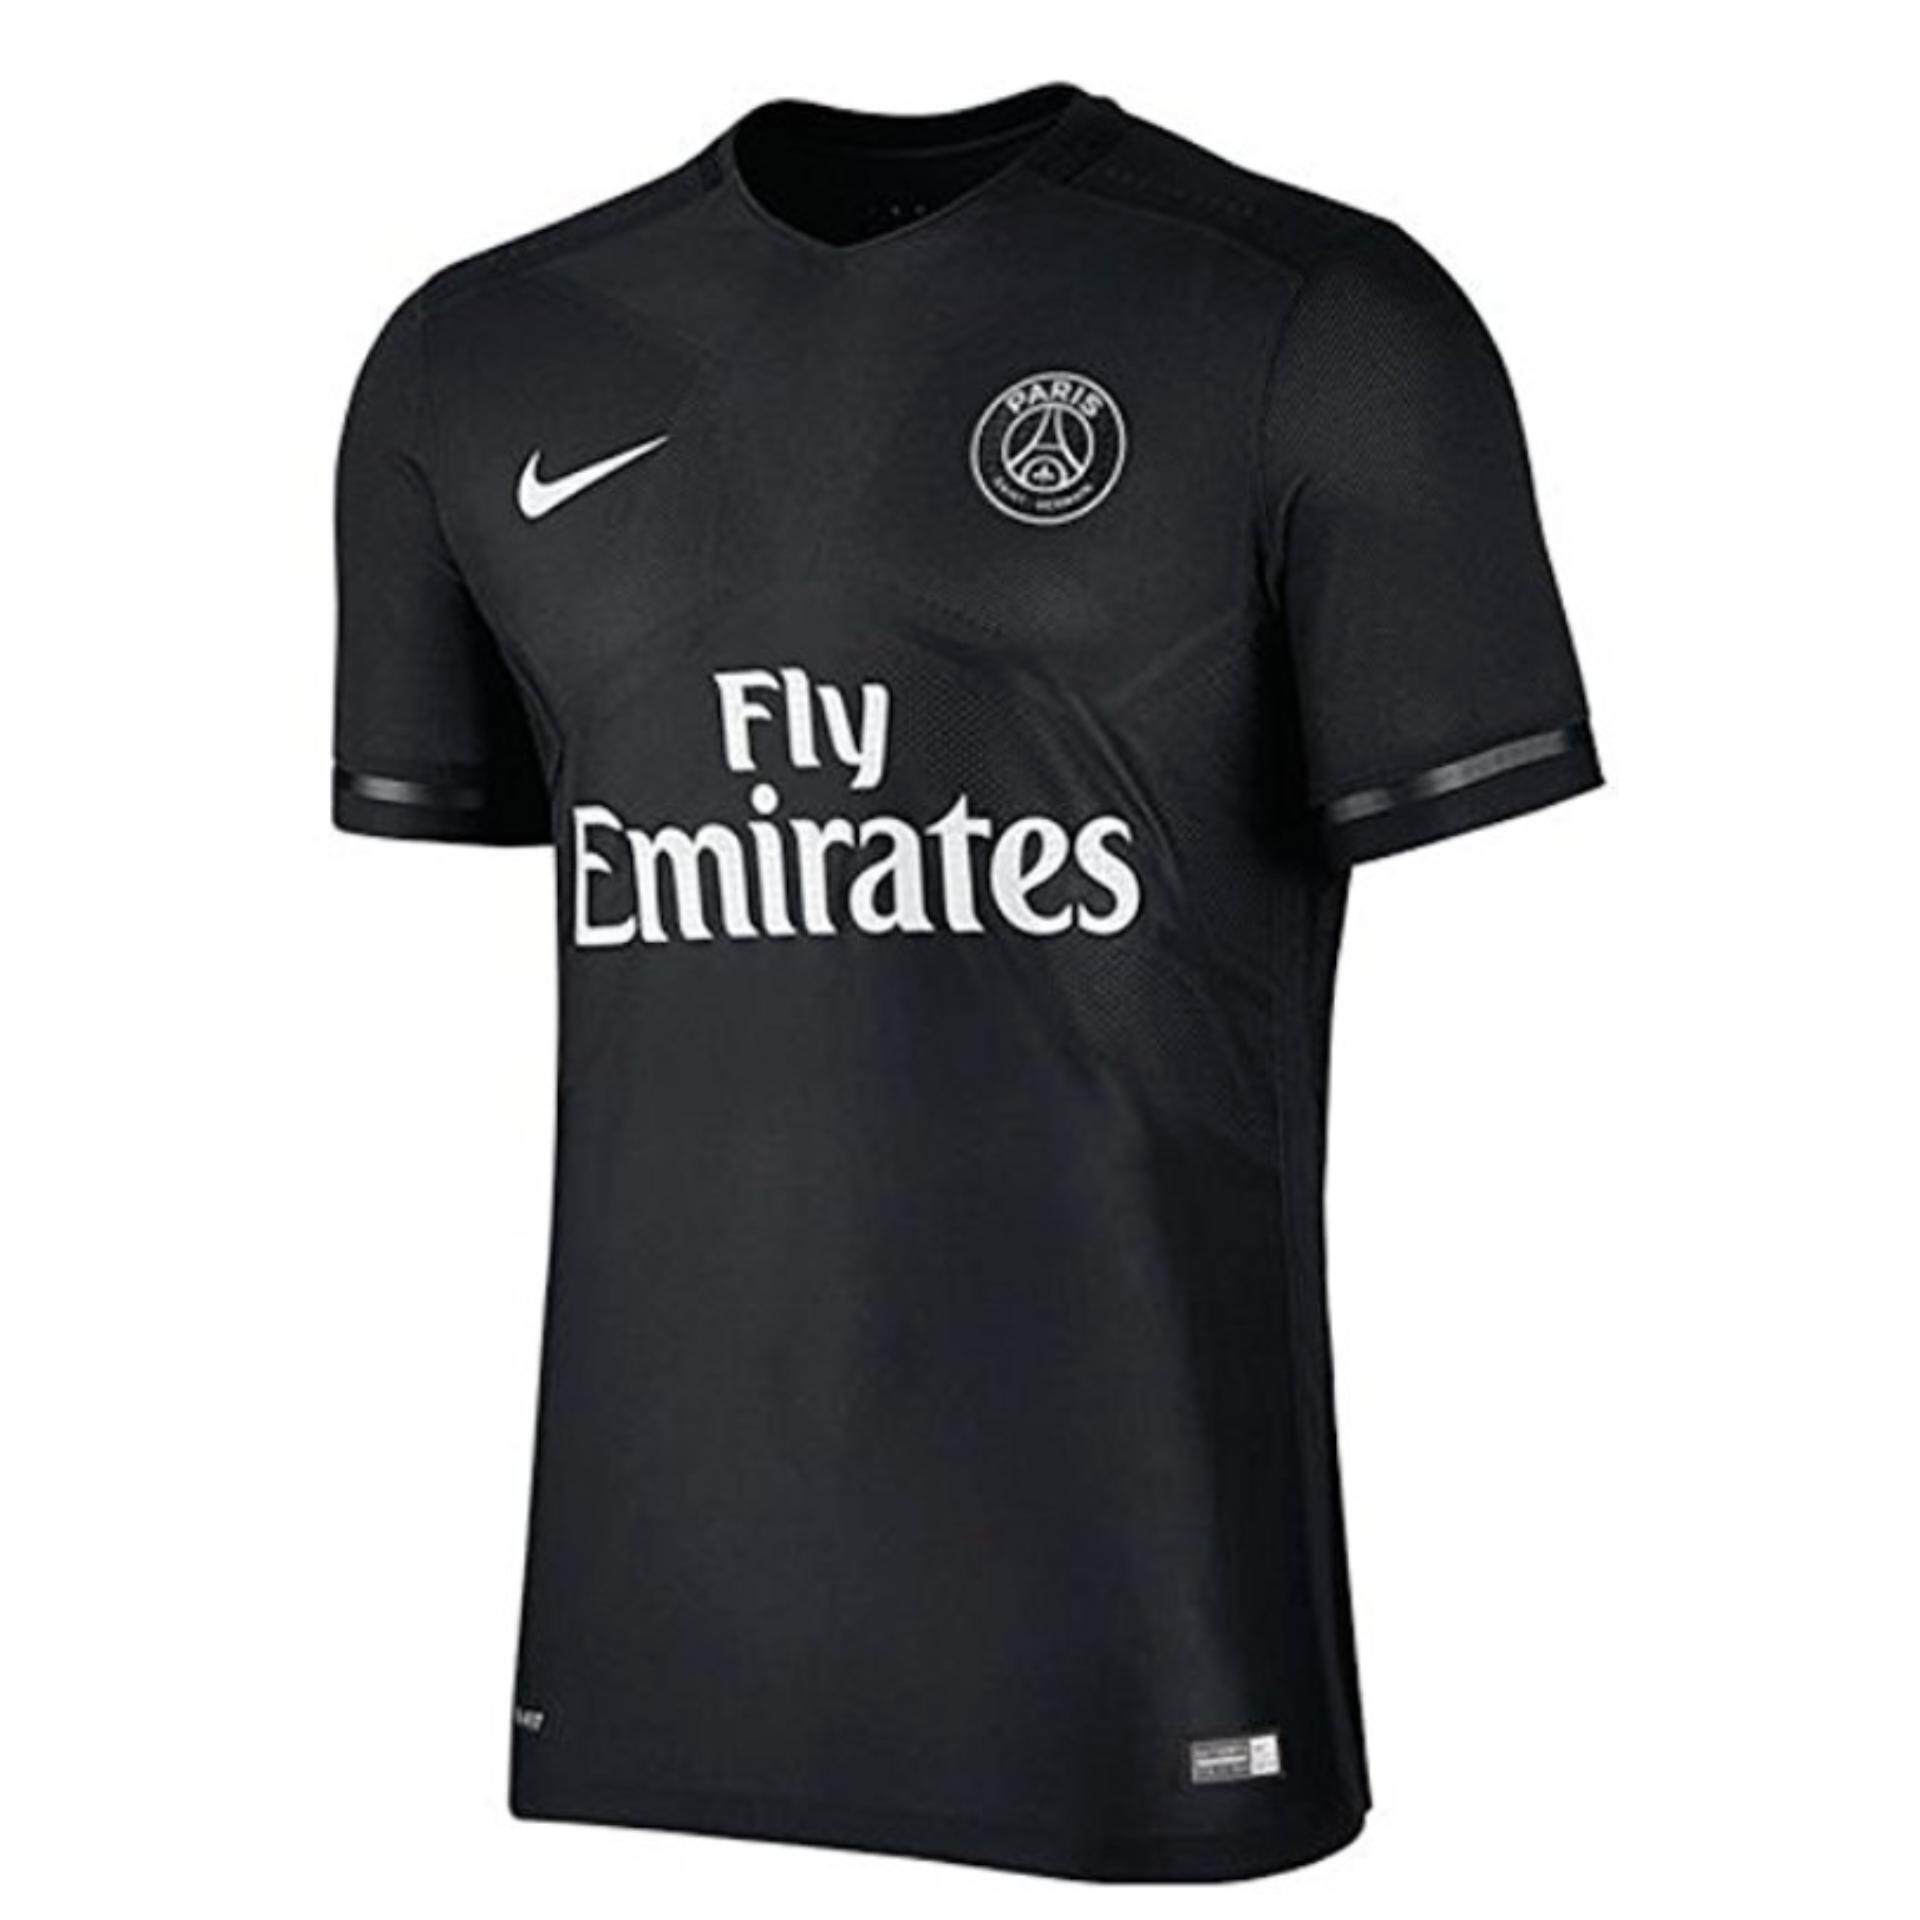 Cuci Gudang Paris St Germain S Second Away Football Jersey For The 2017 18 Season Intl